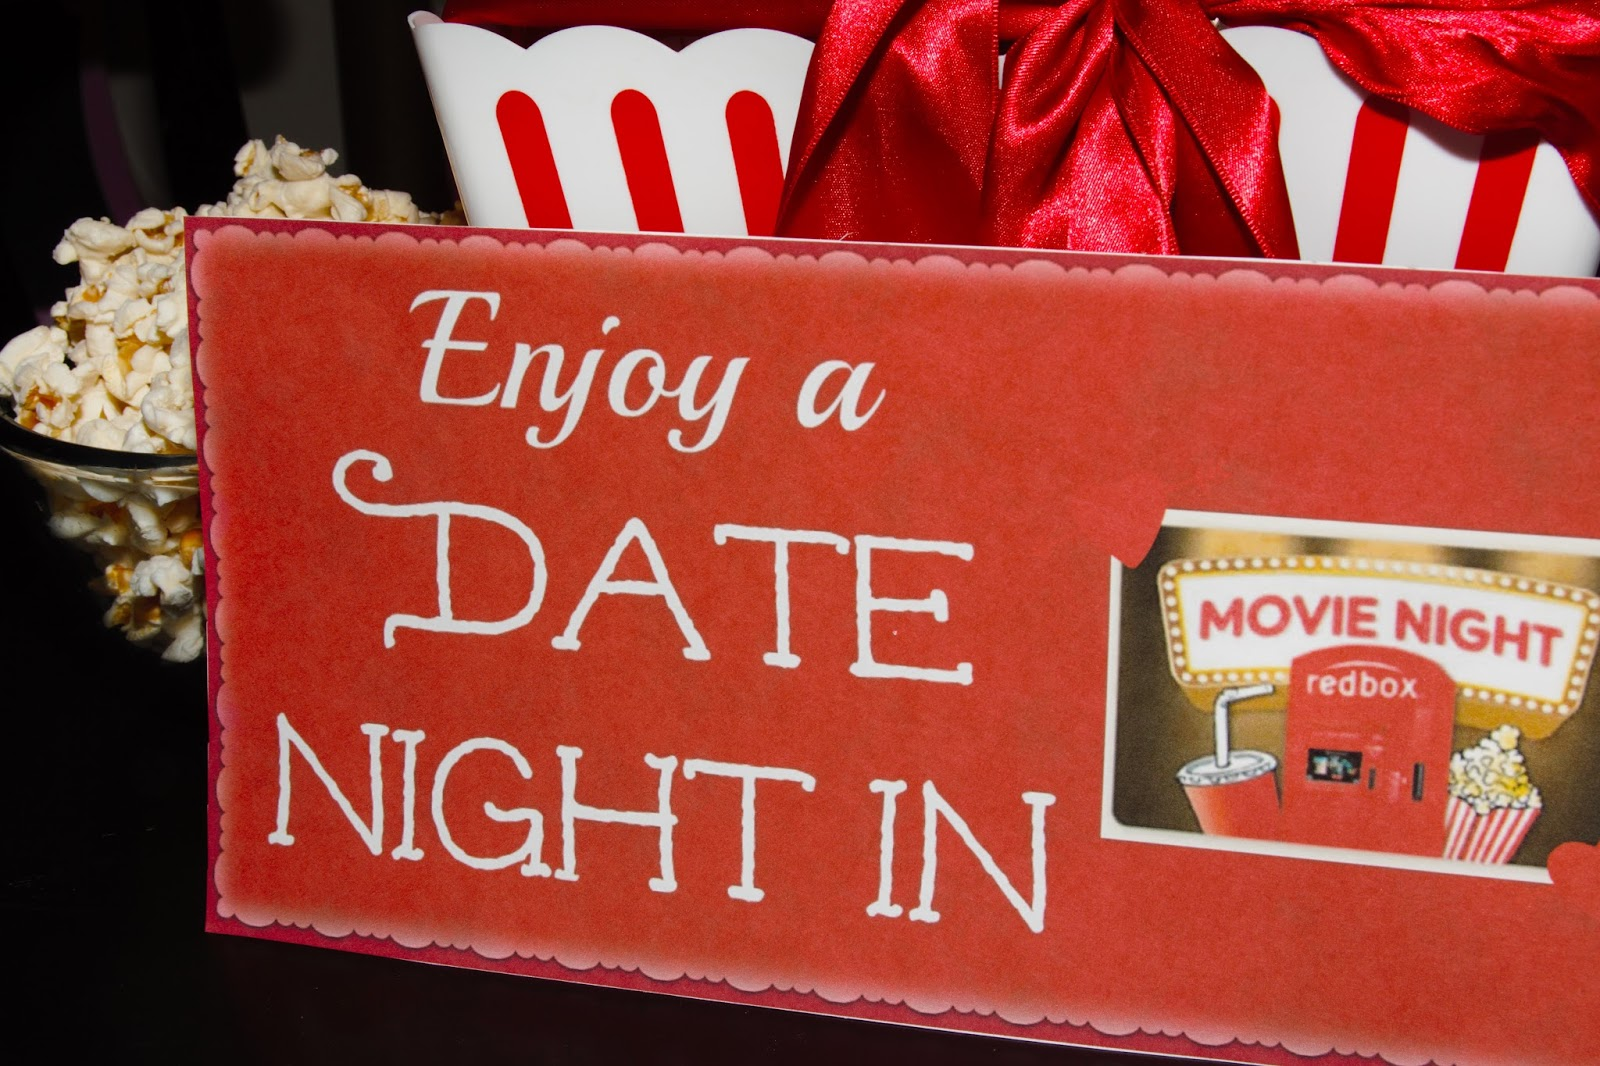 mothers day movie night gift basket idea 2018